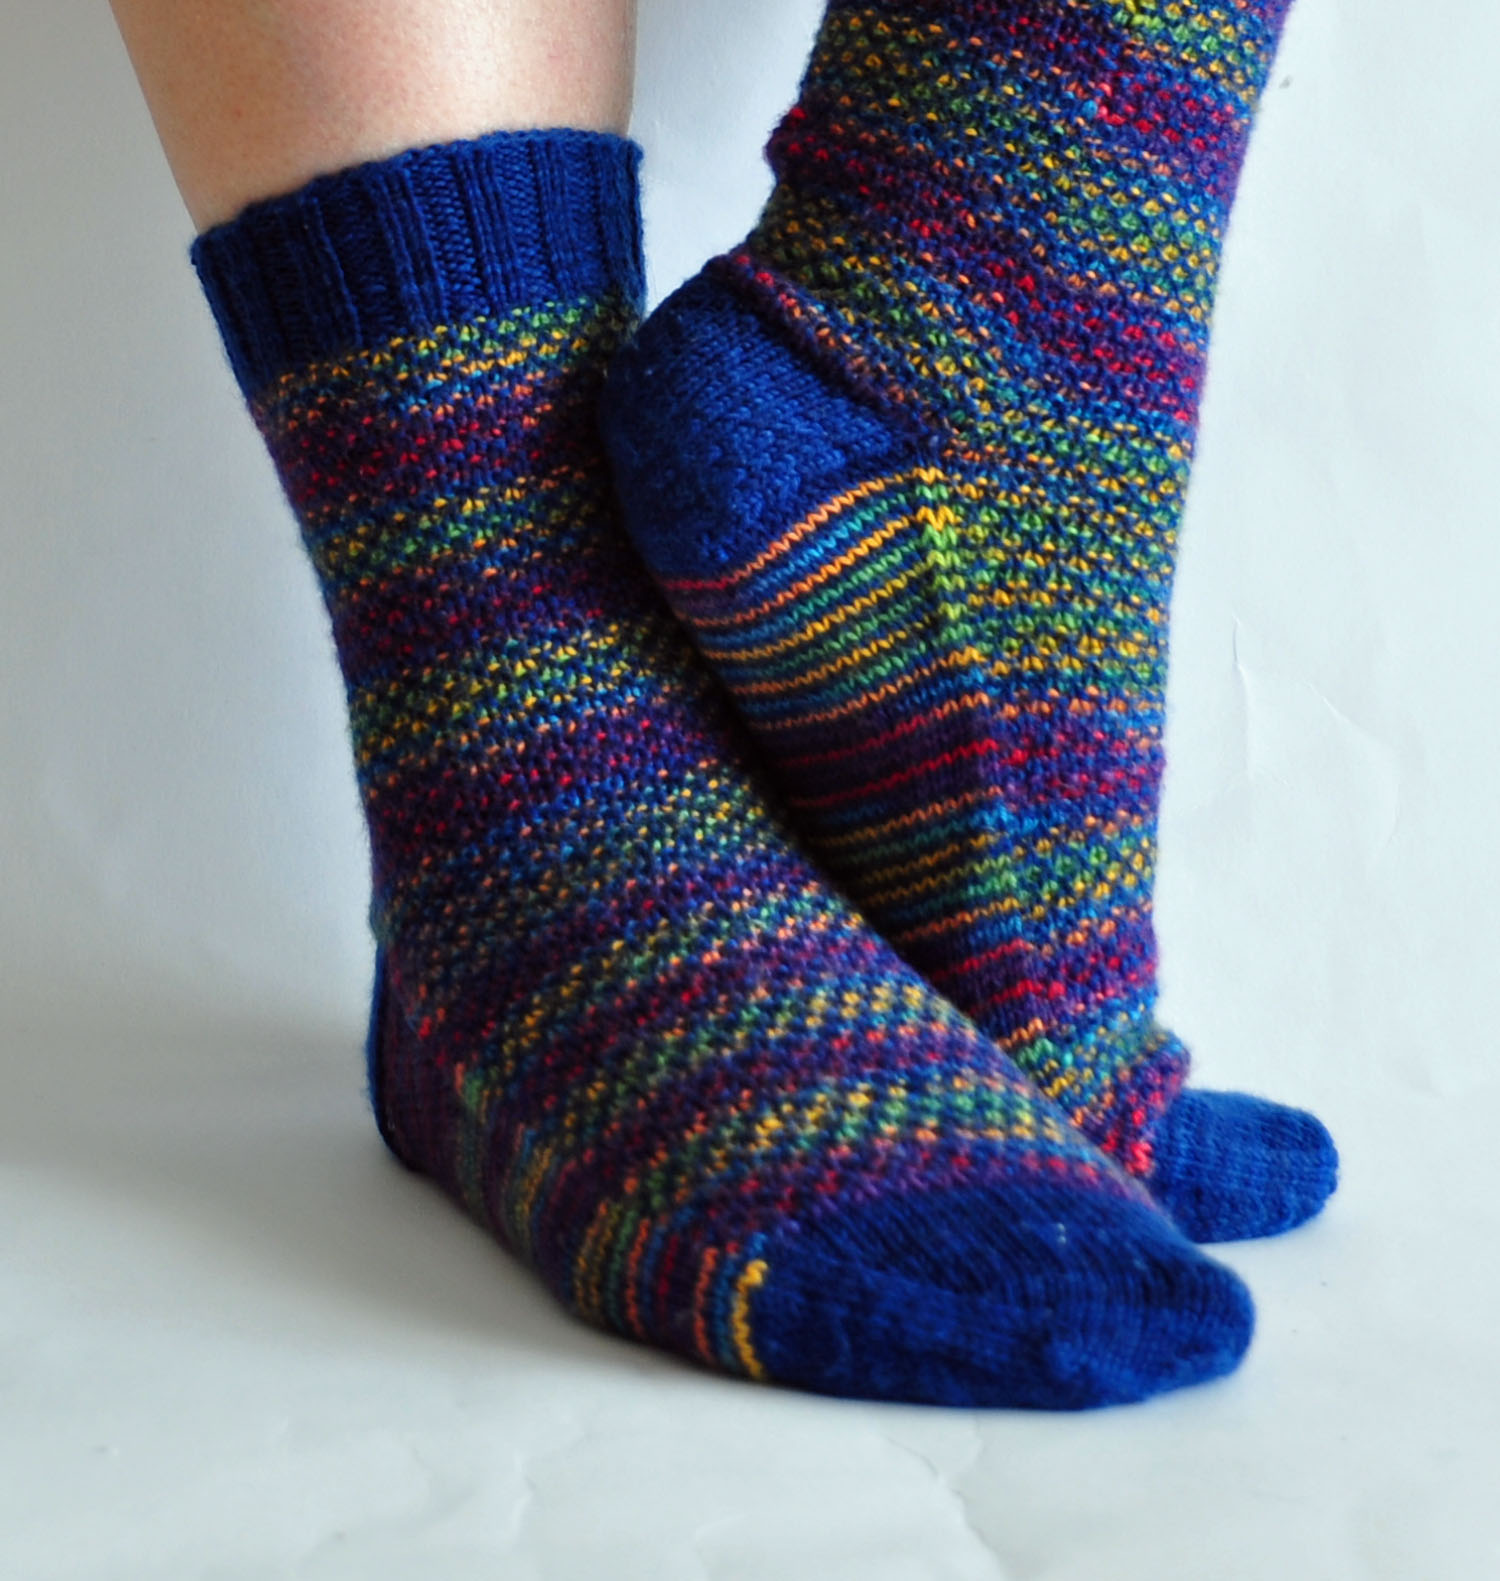 Do You Wear Socks With Spinning Shoes